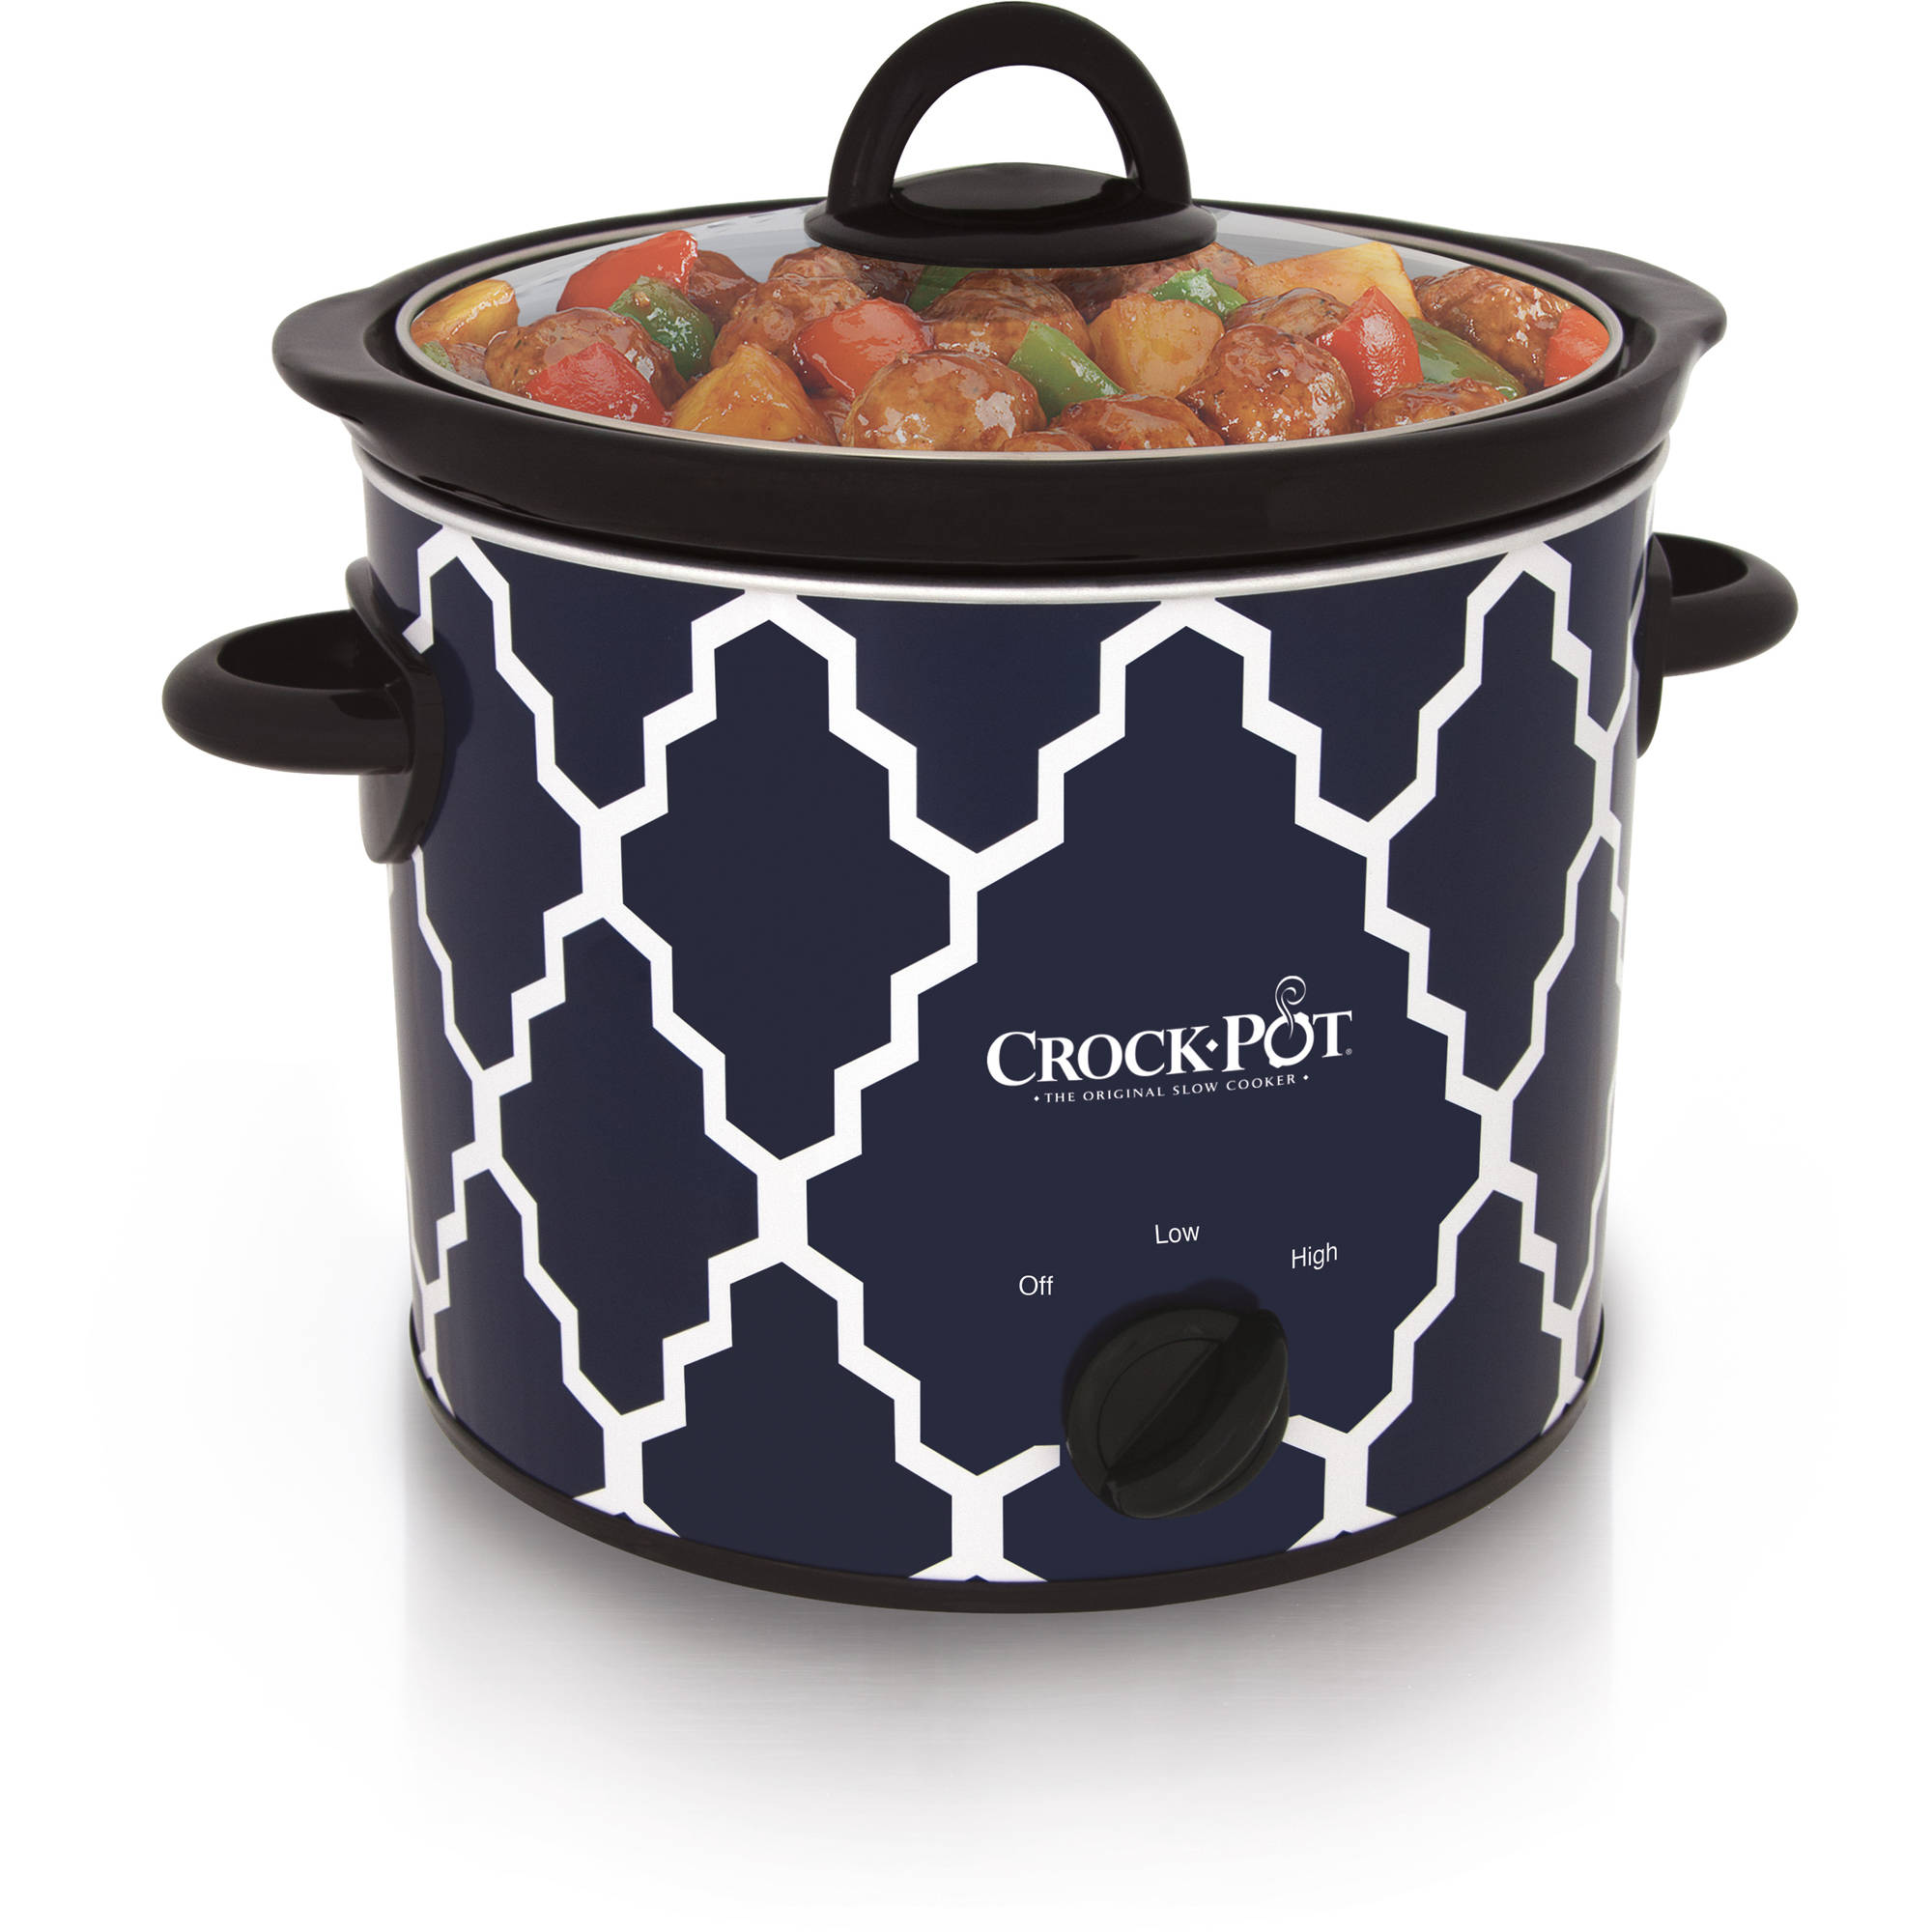 72af263d 2d77 4d99 be42 1a579e036056_1.6f01d689ef641a46a1002c0db3207317 crock pot 4 quart manual slow cooker, scr400 blt wm1 walmart com Crock Pot Manual PDF at bayanpartner.co